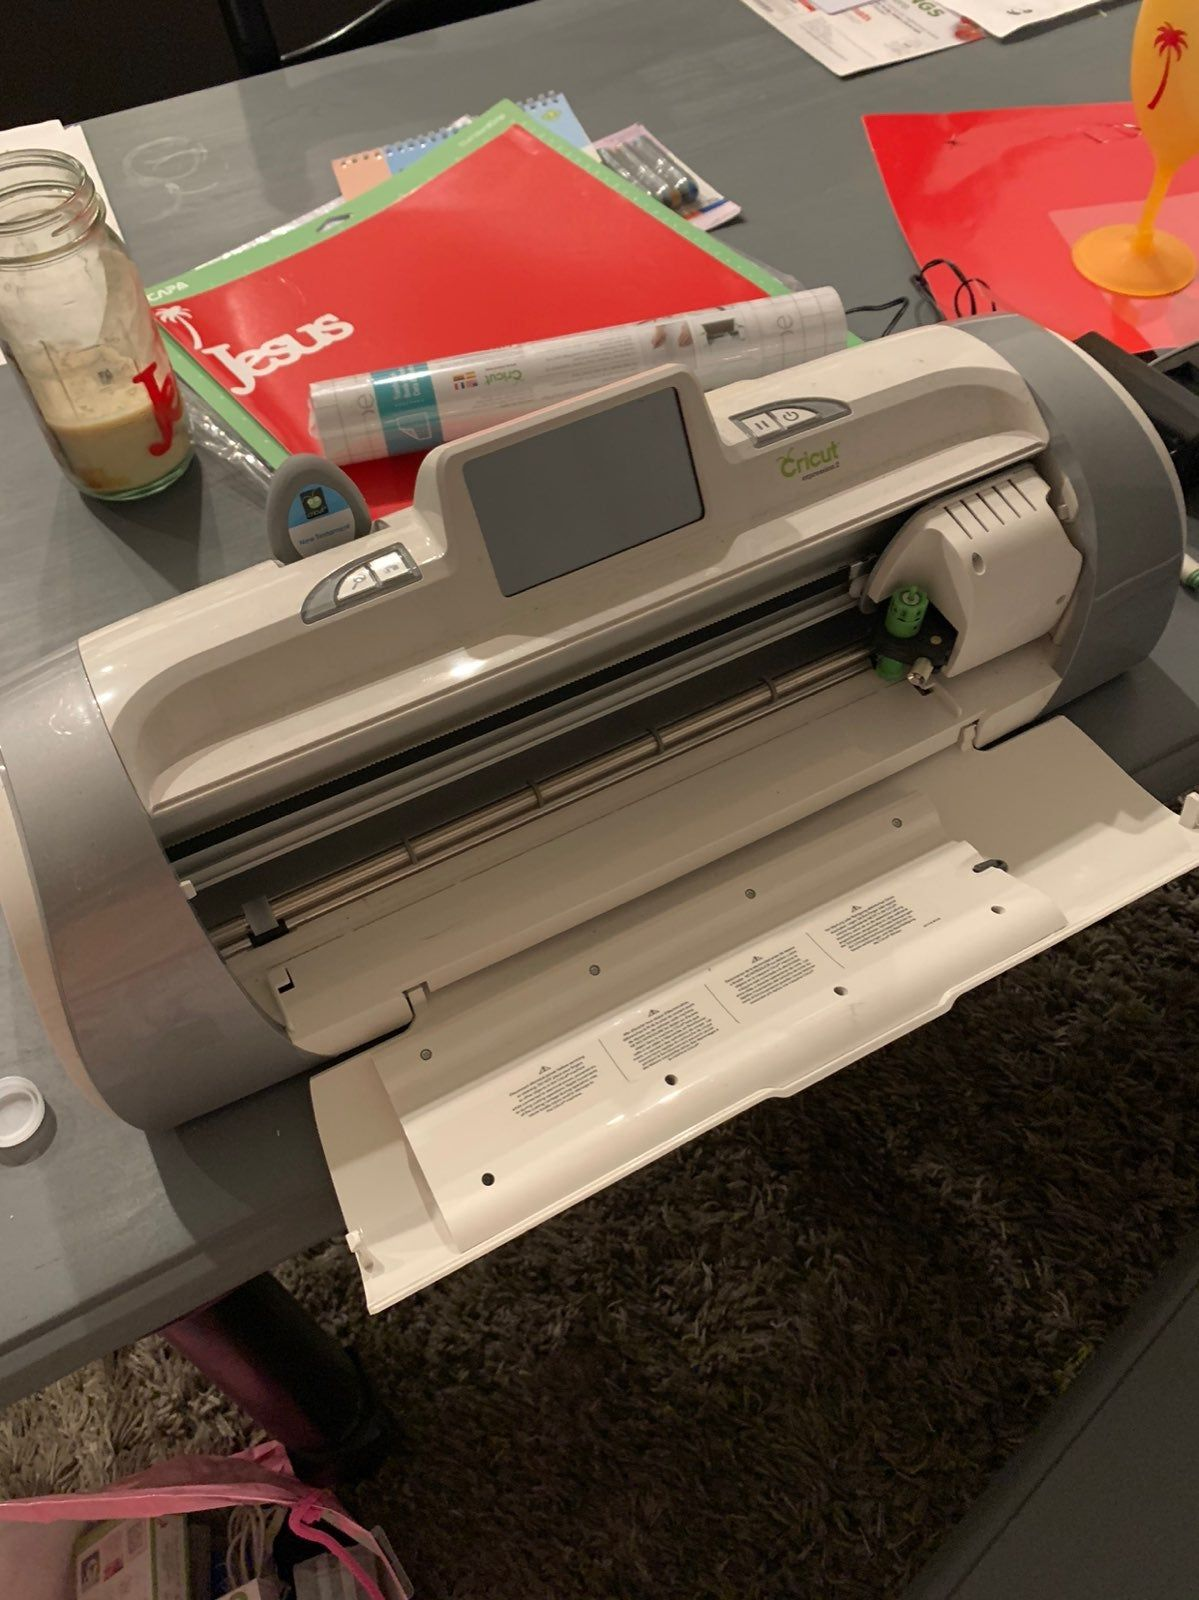 Selling My Cricut Expressions 2 So I Can Upgrade Works Great And Comes With Bible People Cartridge Cricut Expression Cricut Expression 2 Cricut